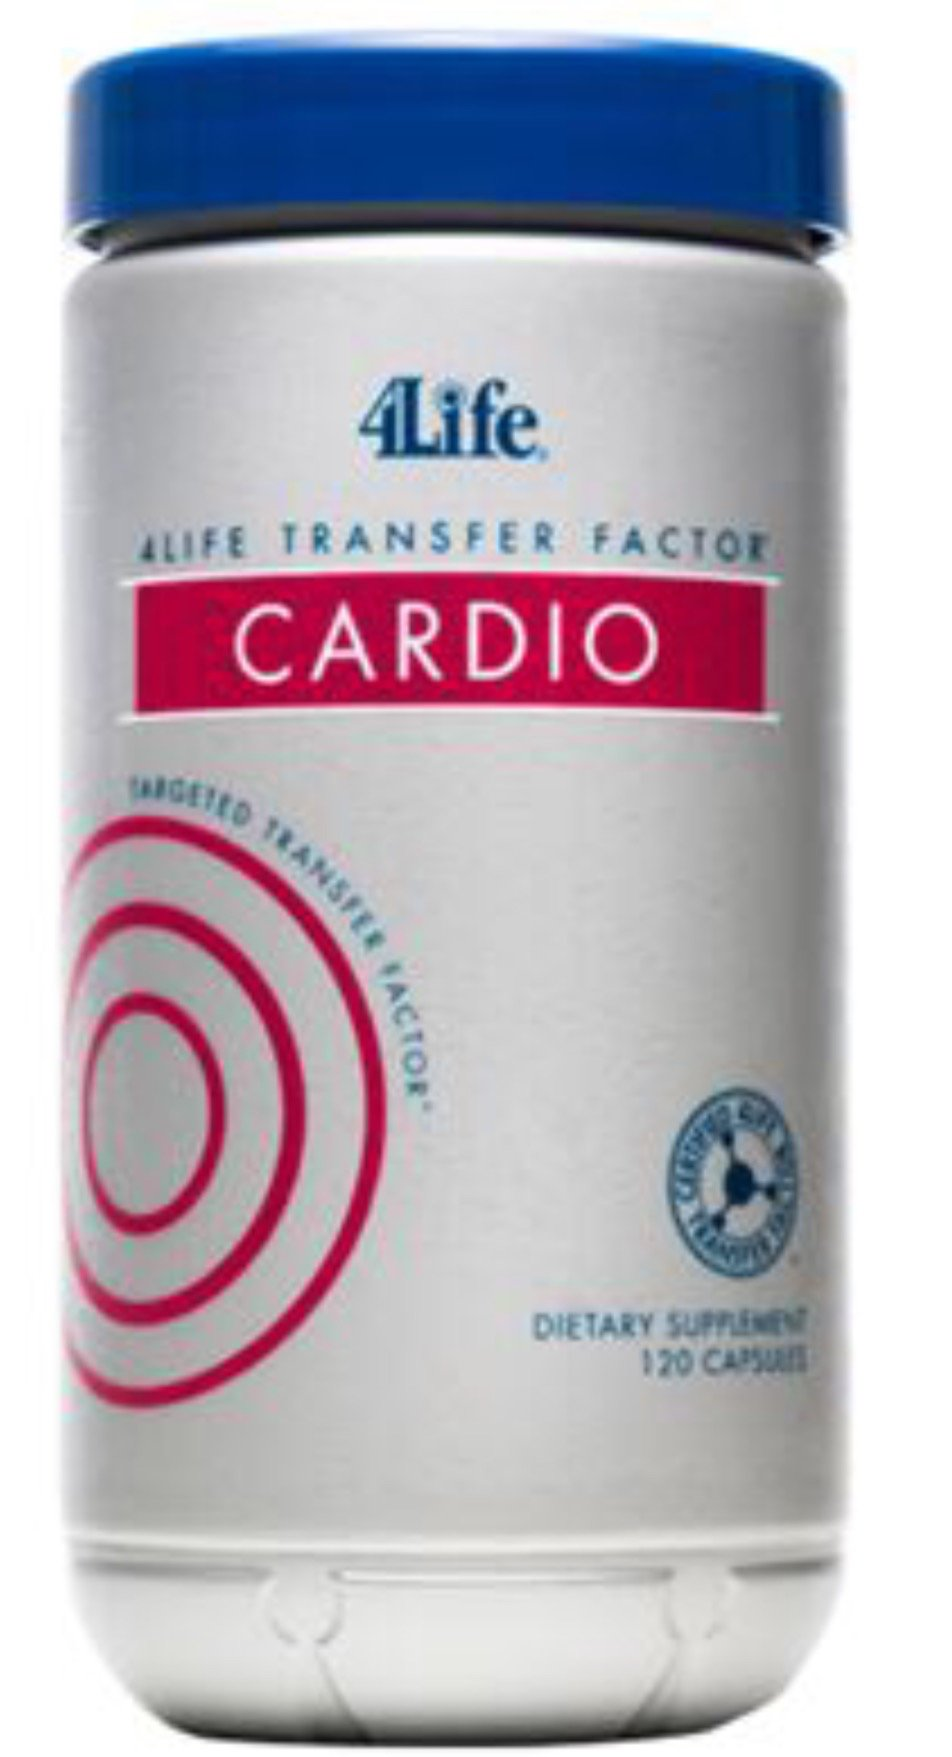 4Life Transfer Factor Cardio by 4Life - 120 ct/bottle